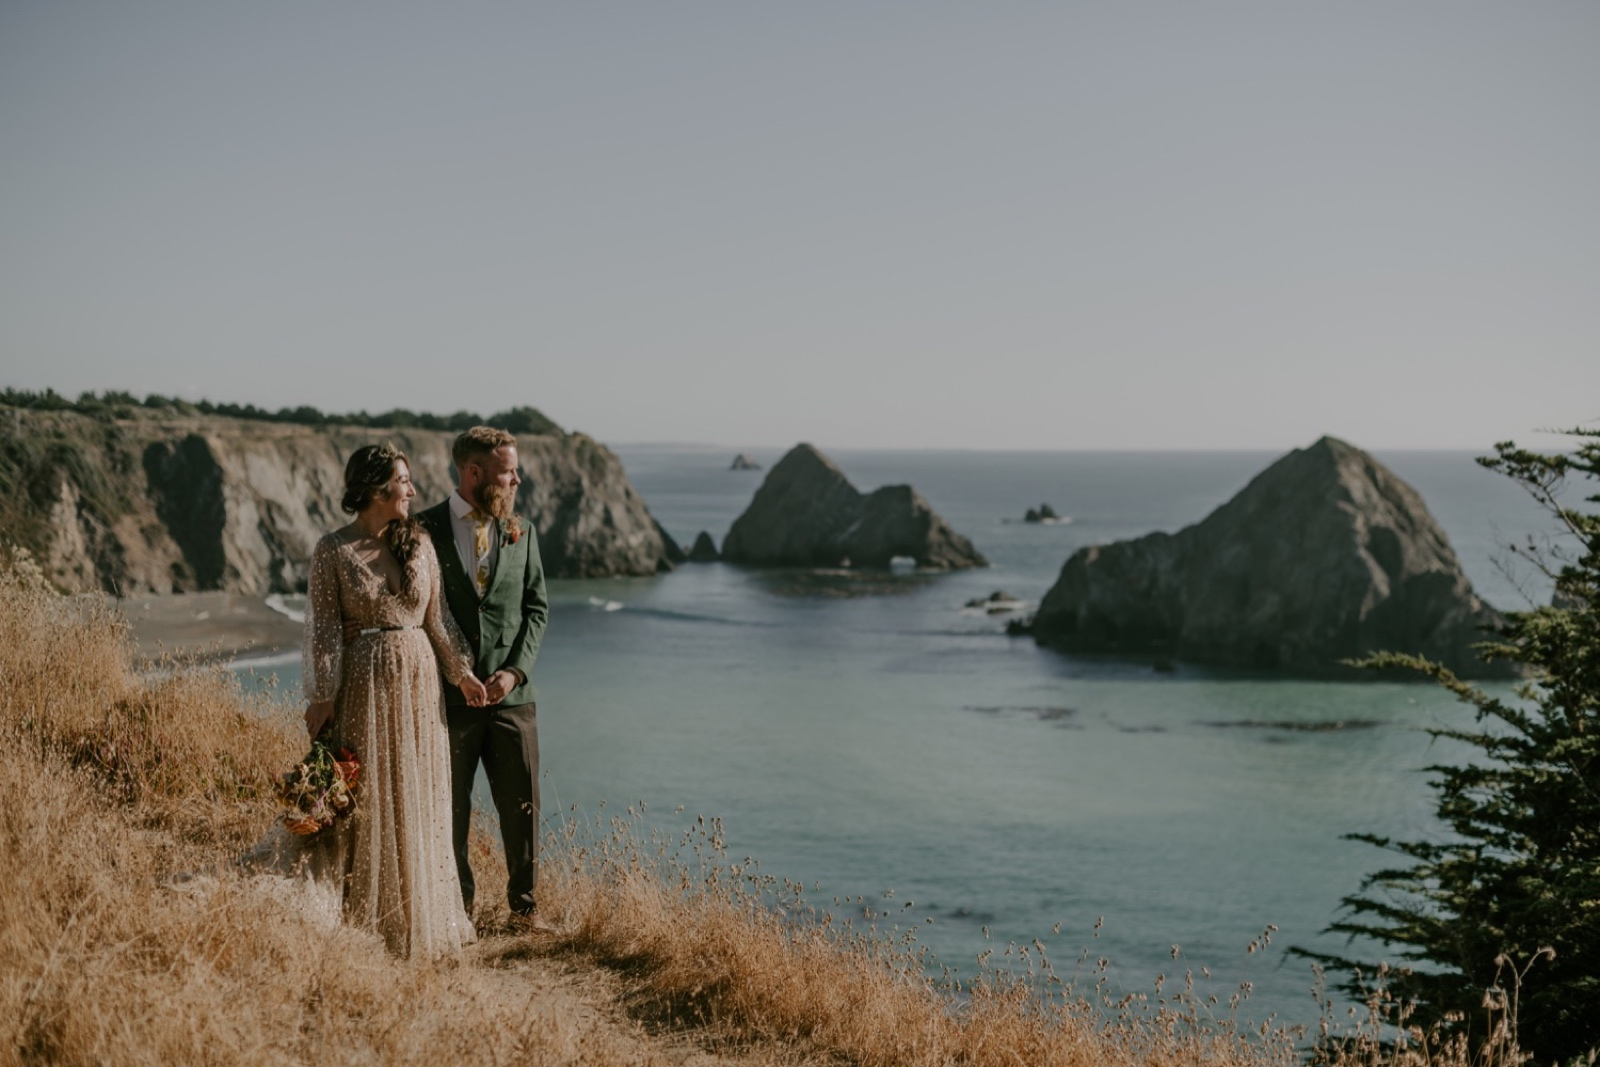 Mendocino_Wedding_Cuffeys_Cove099.JPG